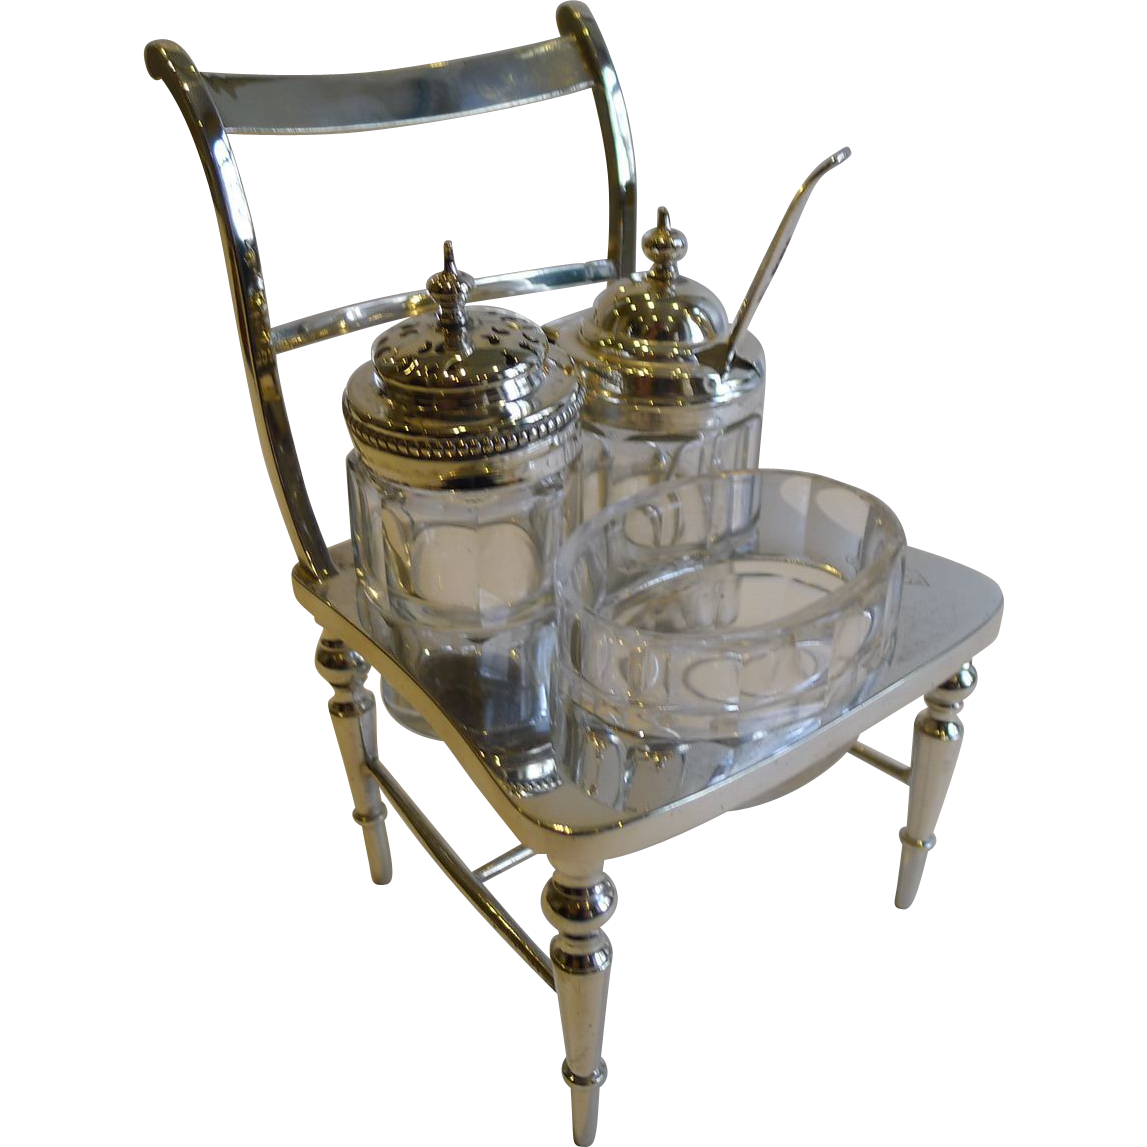 Rare Antique English Novelty Cruet In Silver Plate - Registered For 1877